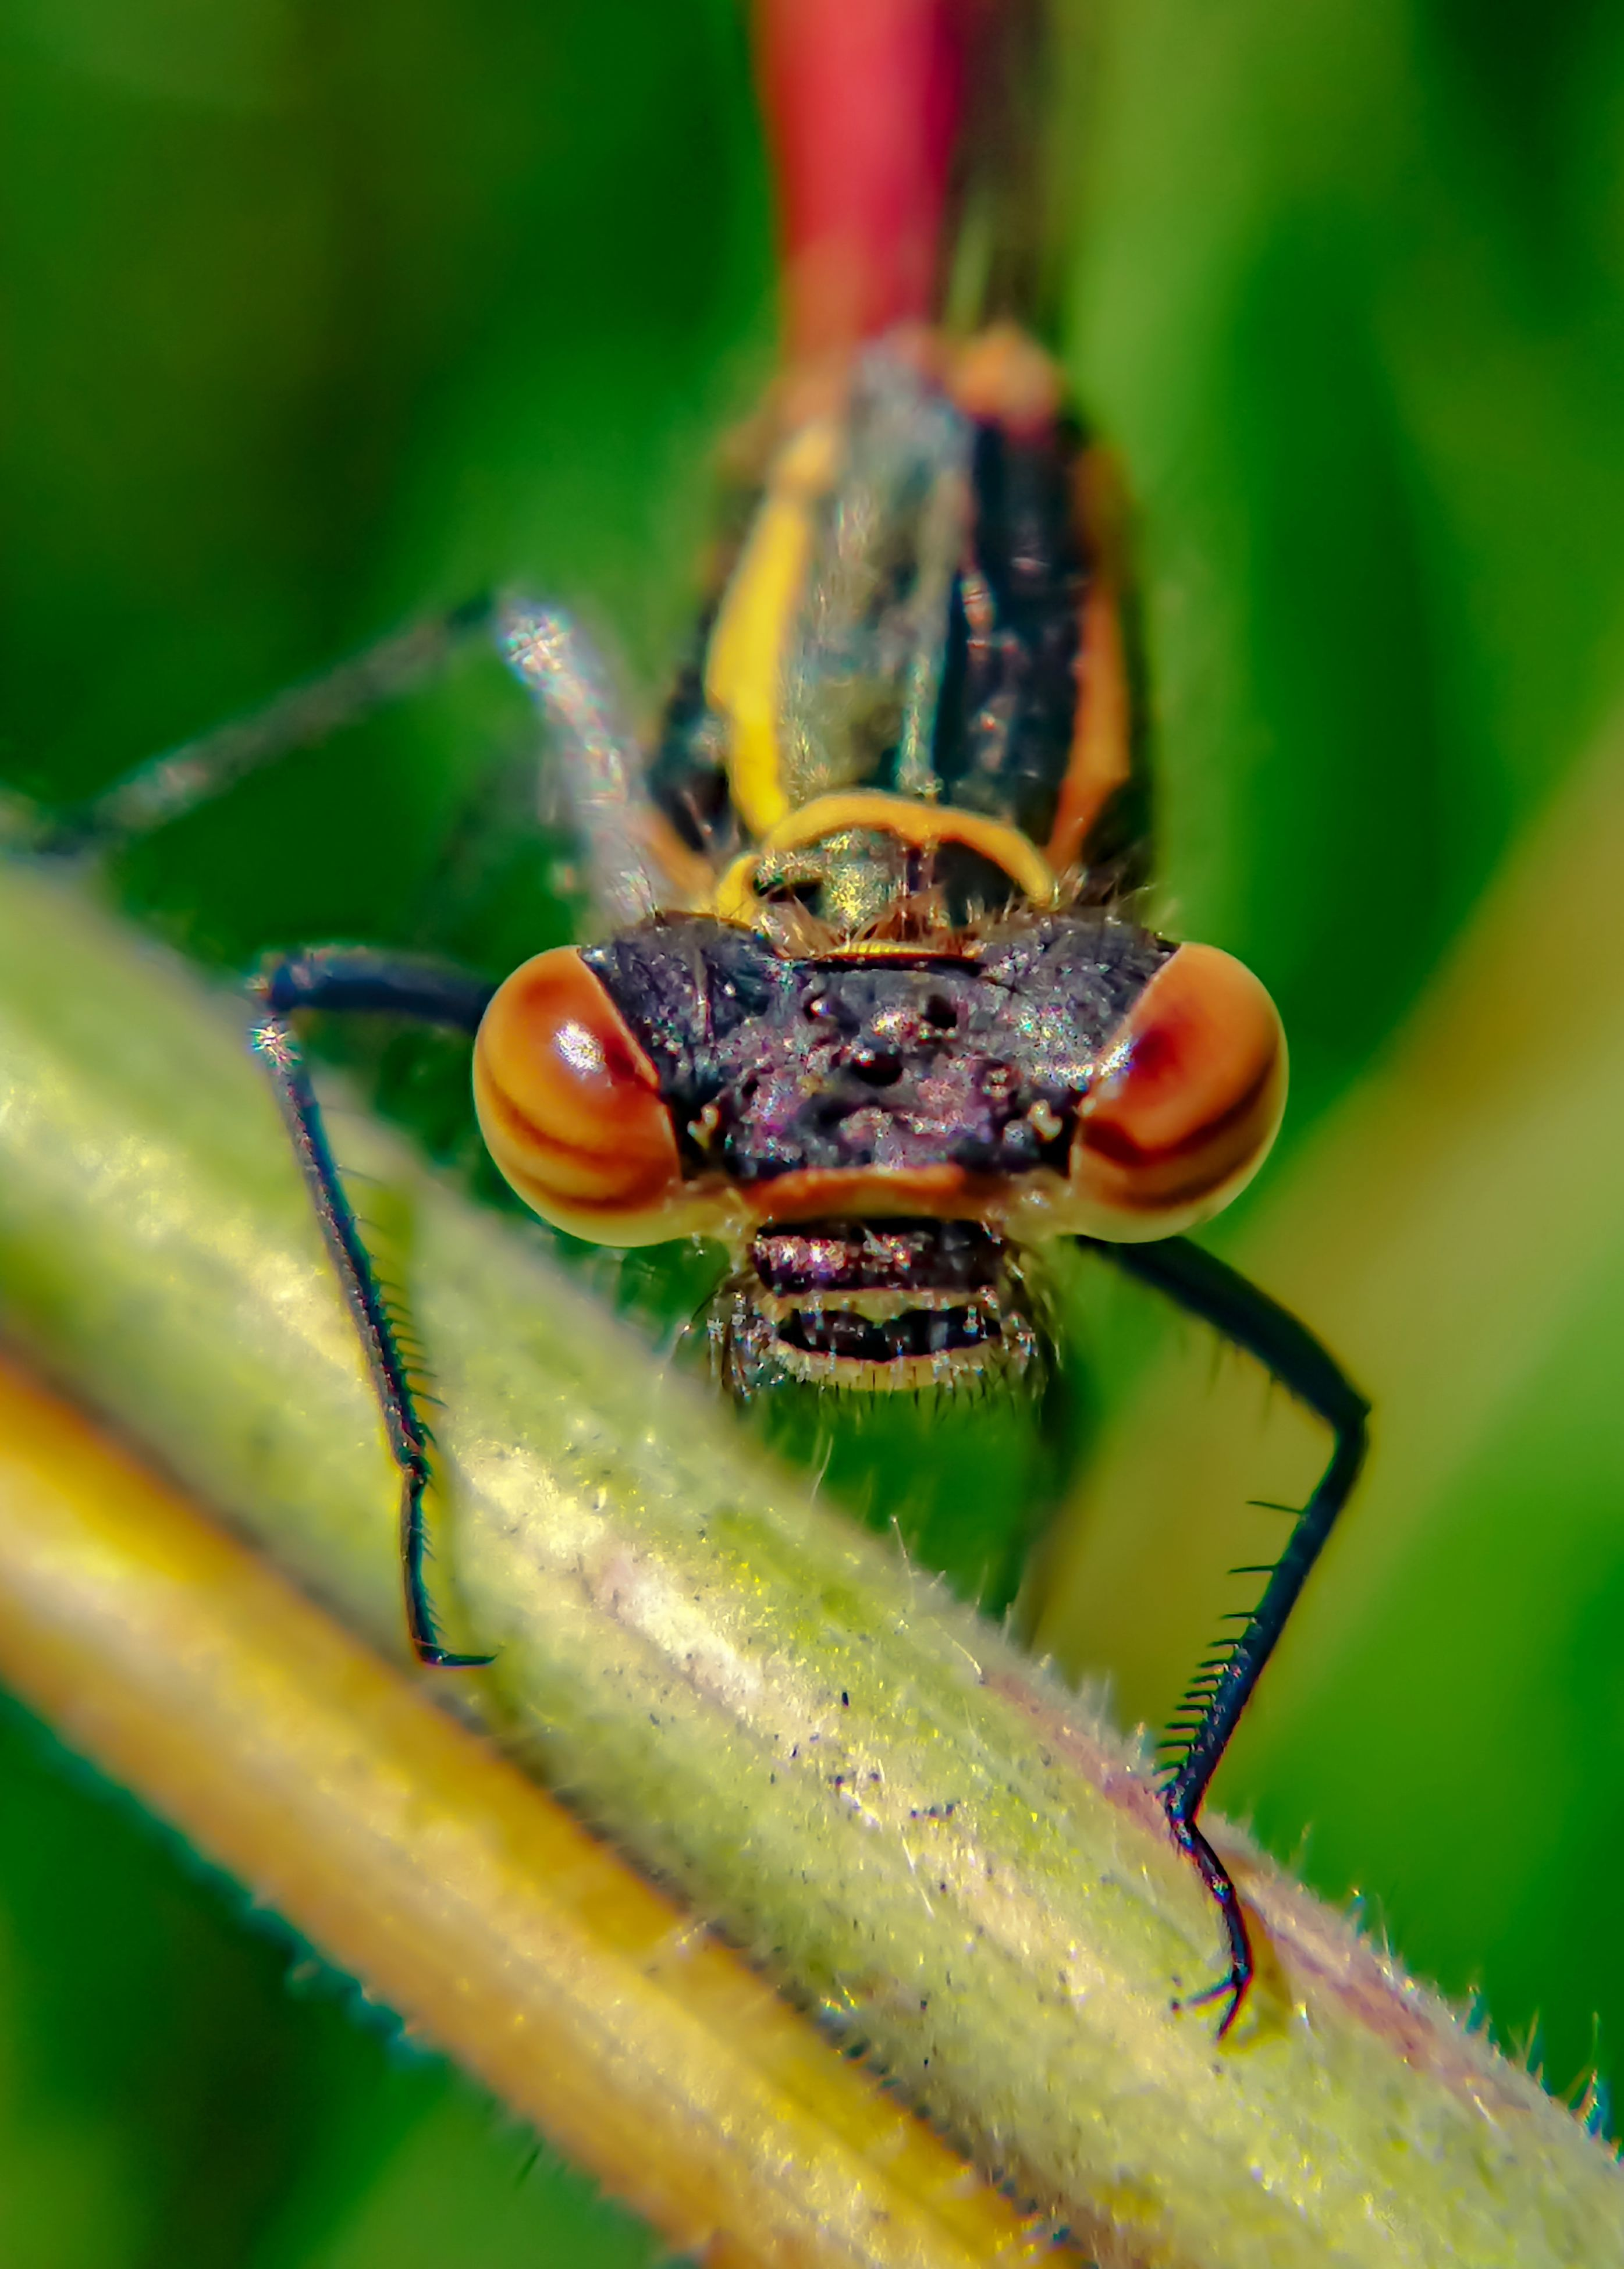 insect, animals in the wild, animal themes, one animal, green color, animal wildlife, close-up, nature, outdoors, day, no people, leaf